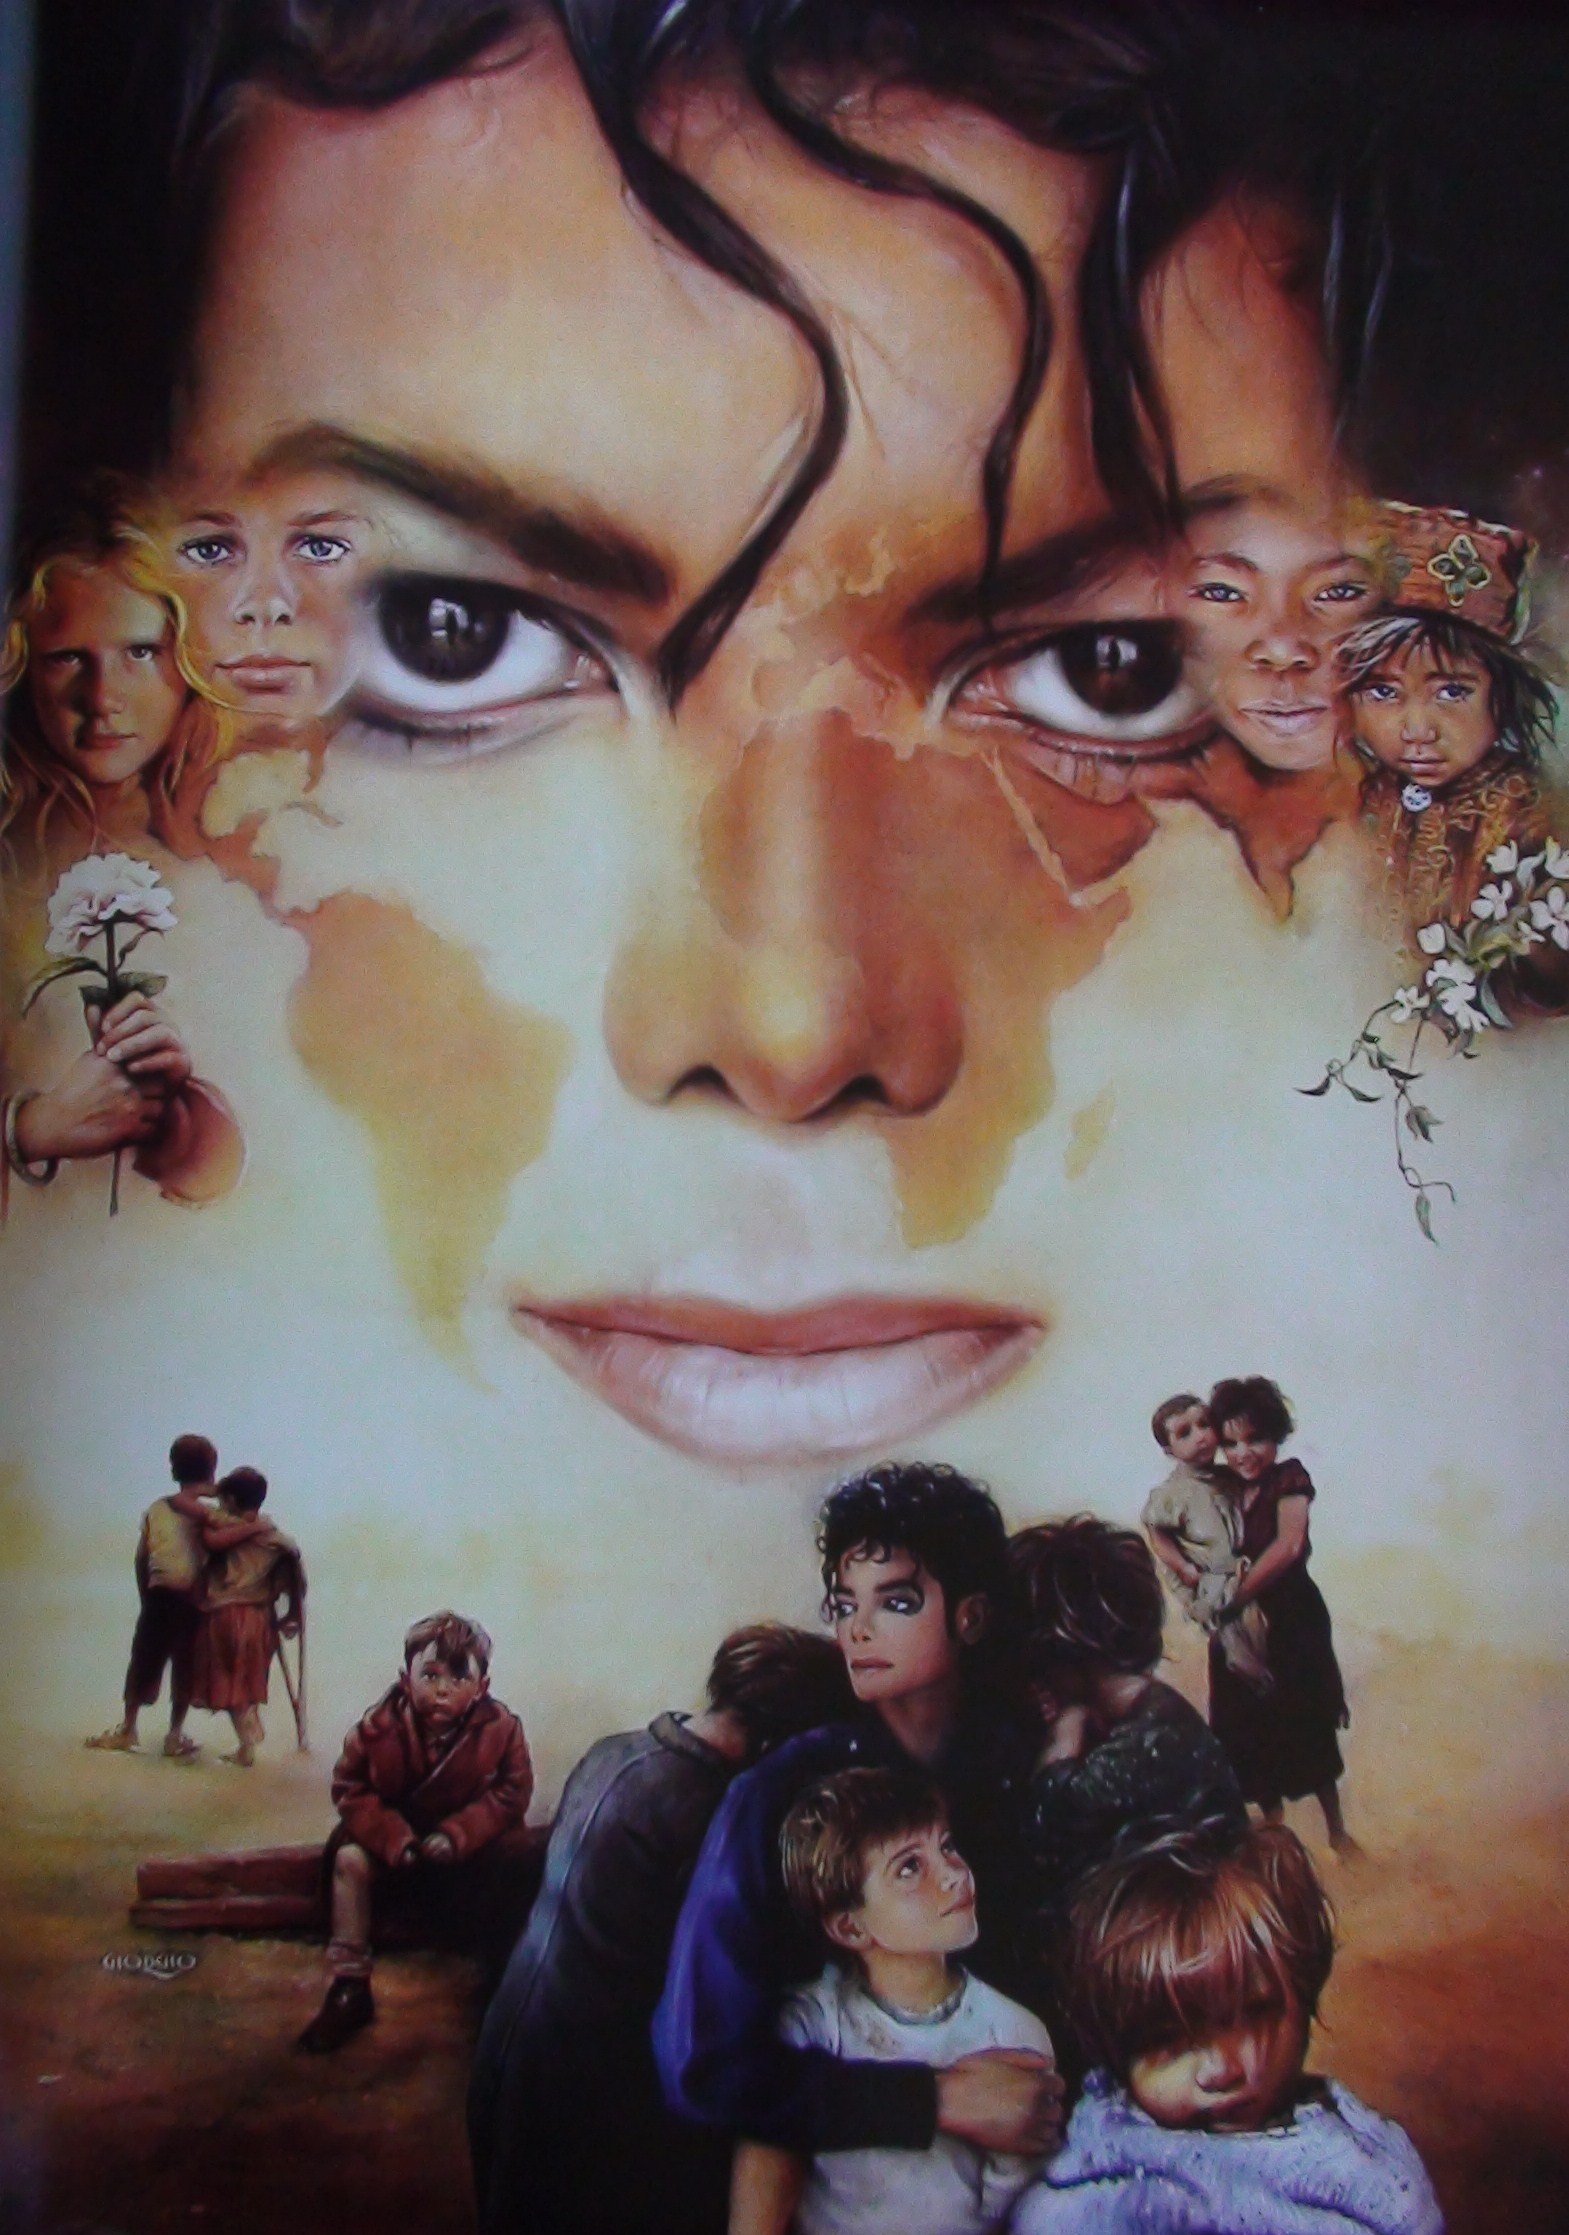 DIA DE LA TIERRA HOMENAJE PARA MIKE MJ-paintings-michael-jackson-10531174-1569-2235